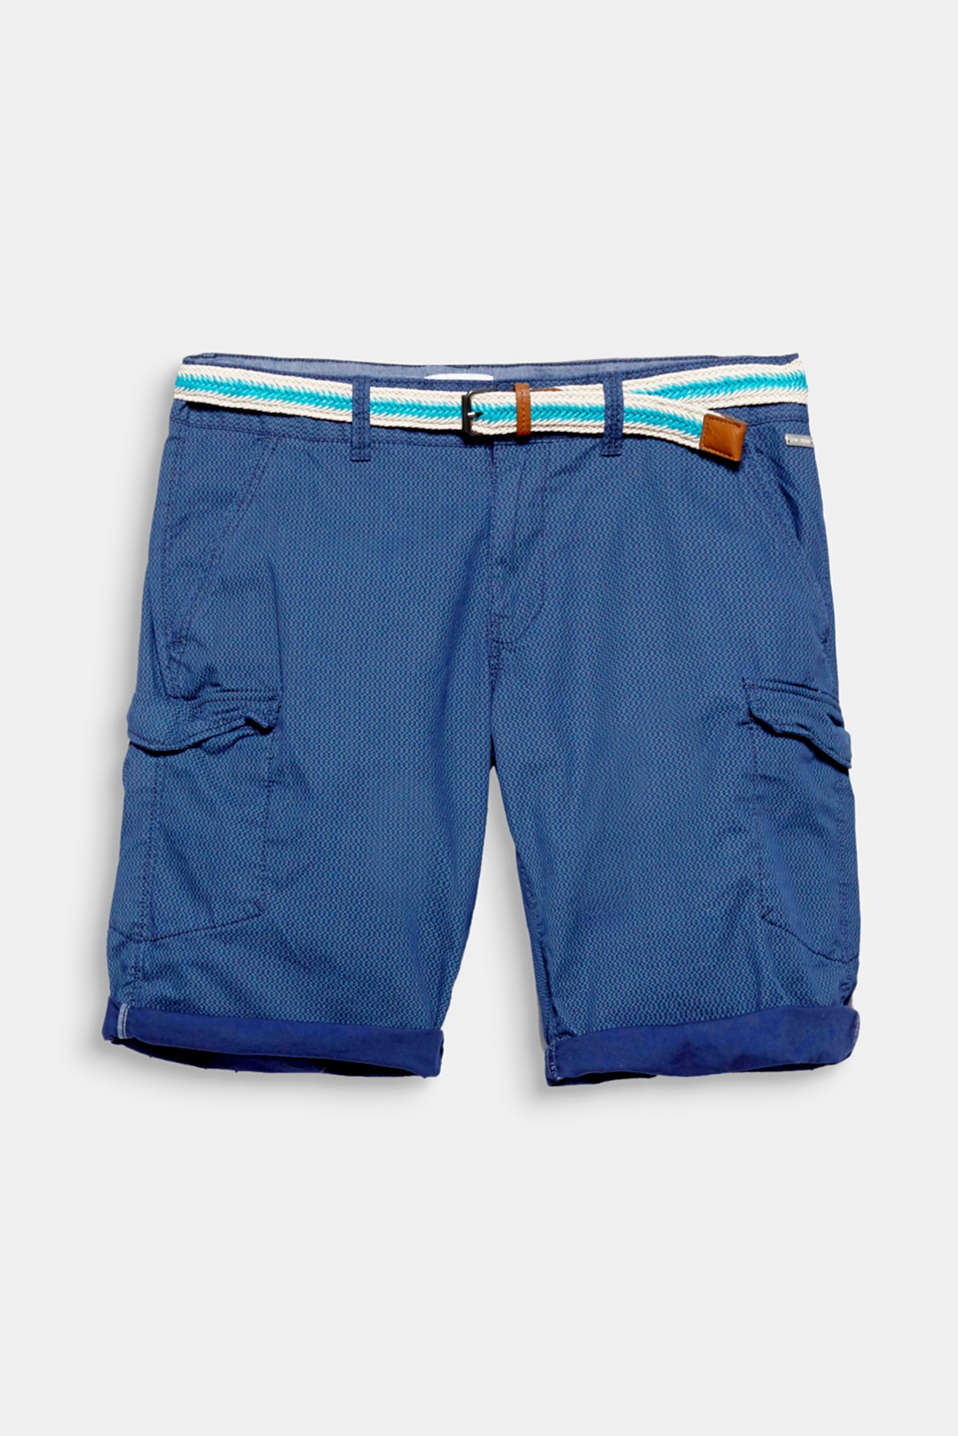 A sporty and casual look for summer! Characteristic cargo pockets and a fine textured print gives these 100% cotton shorts a unique look.